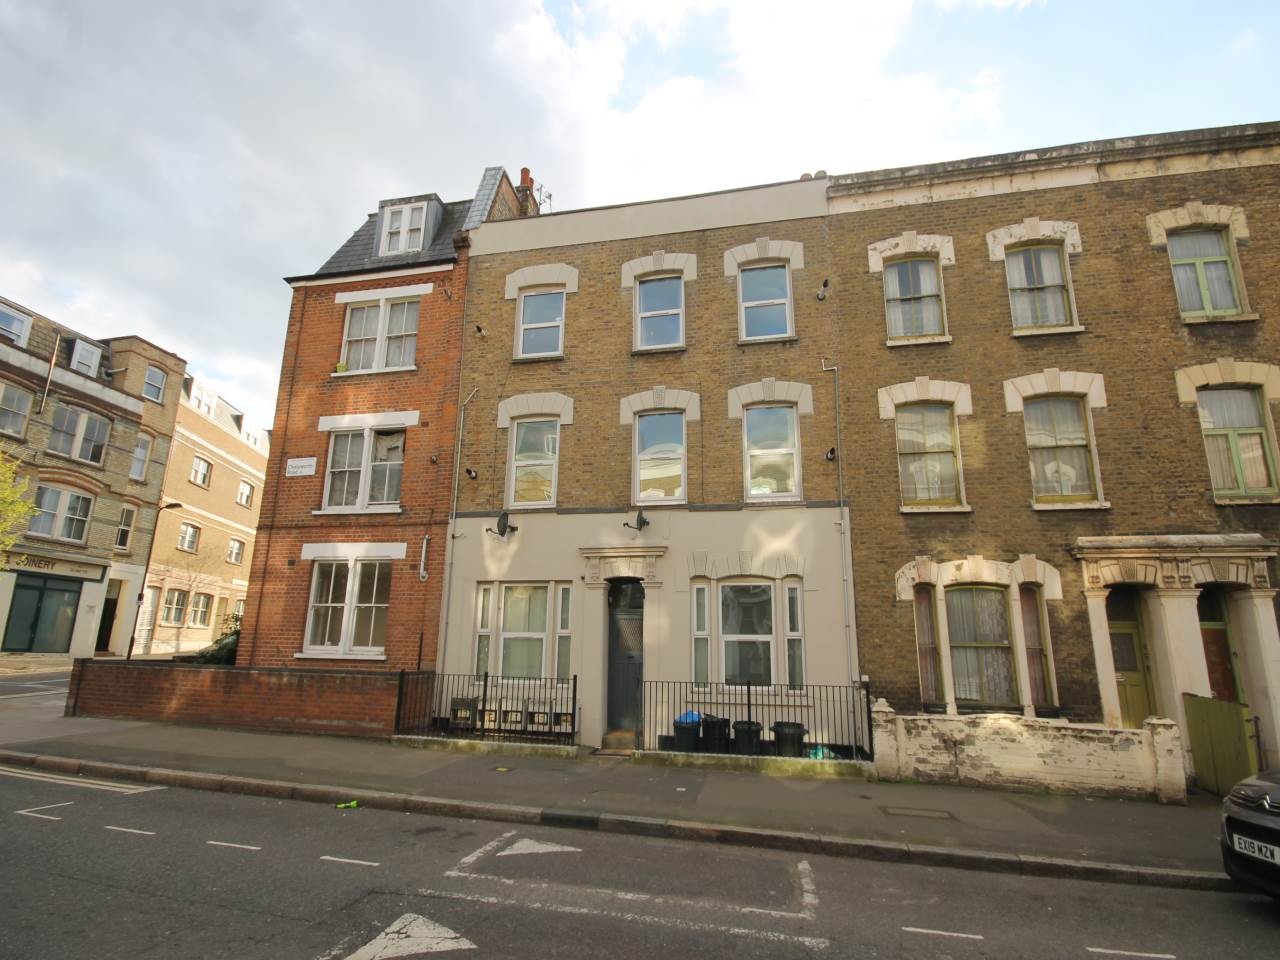 3 bed flat to rent in Hackney, E5